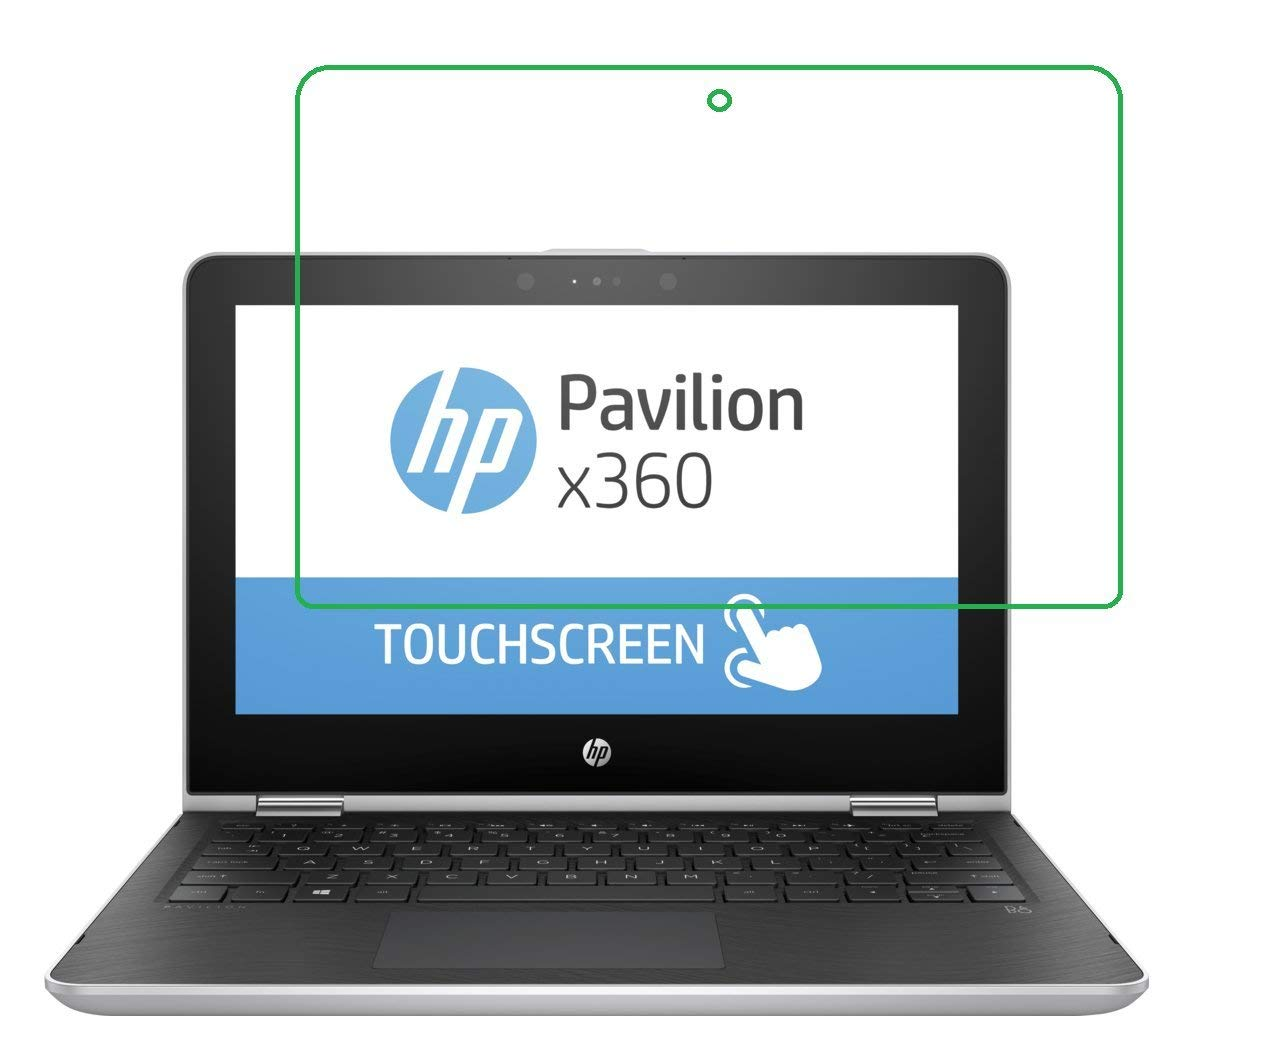 It3 HD Clear 2X Pcs Screen Protector Filter for 14.0 HP Pavilion x360 Convertible Laptop 14t Touch